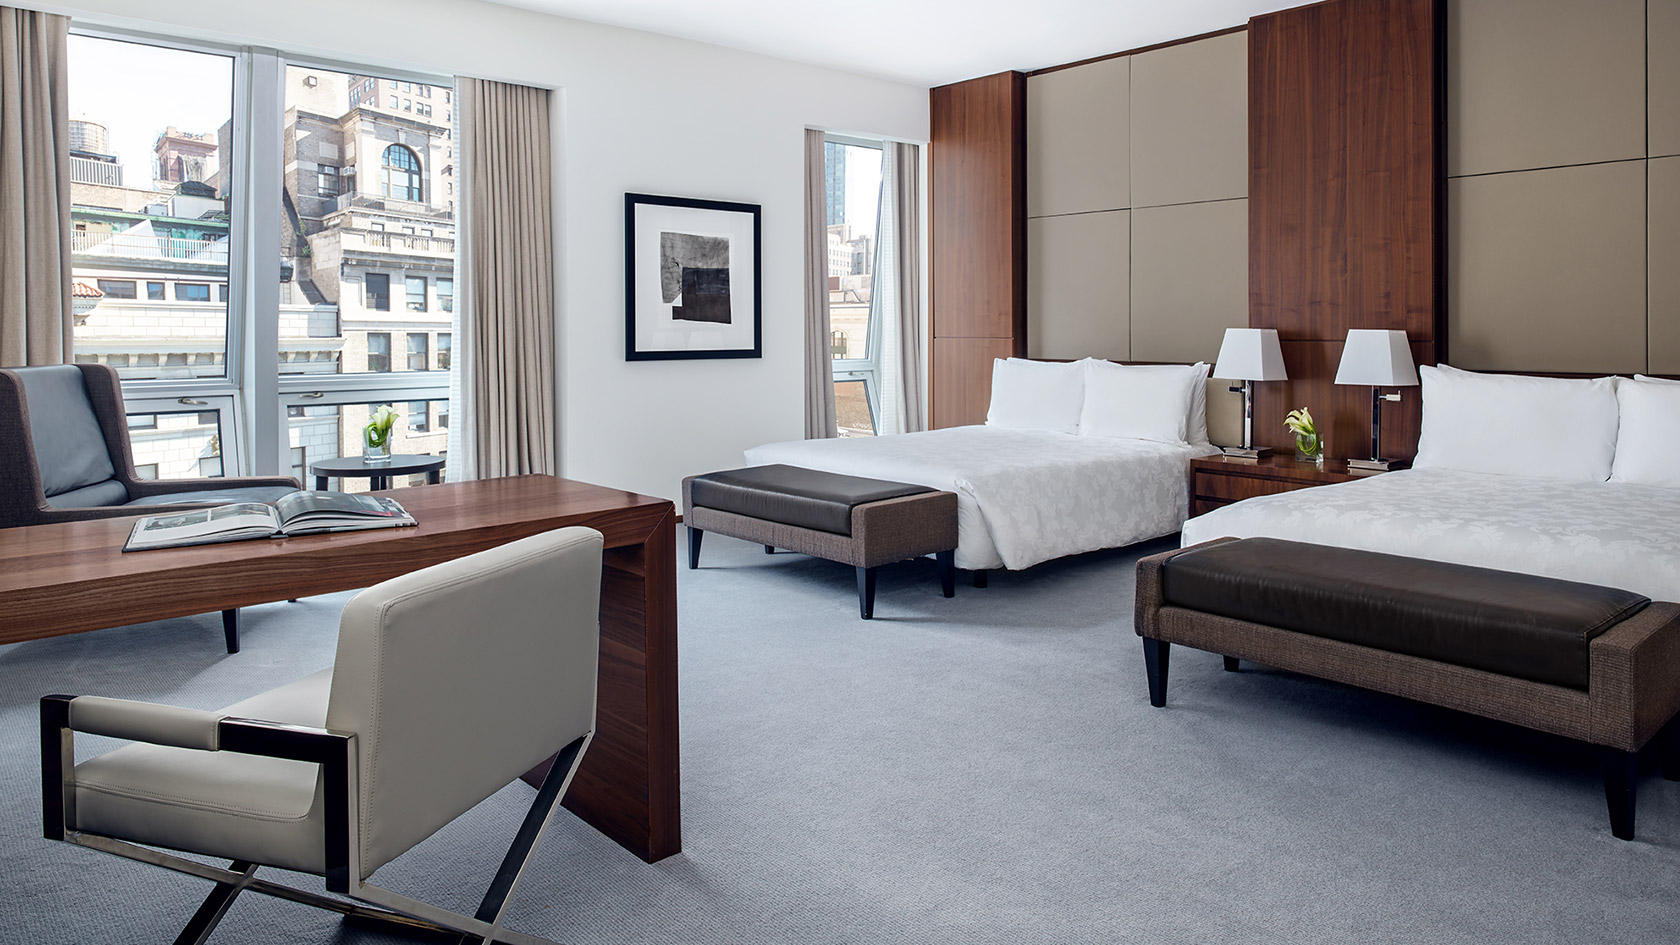 luxury hotel rooms in new york city - hospitality newyork luxuryjourney - langhamhotel luxury hotel rooms nyc